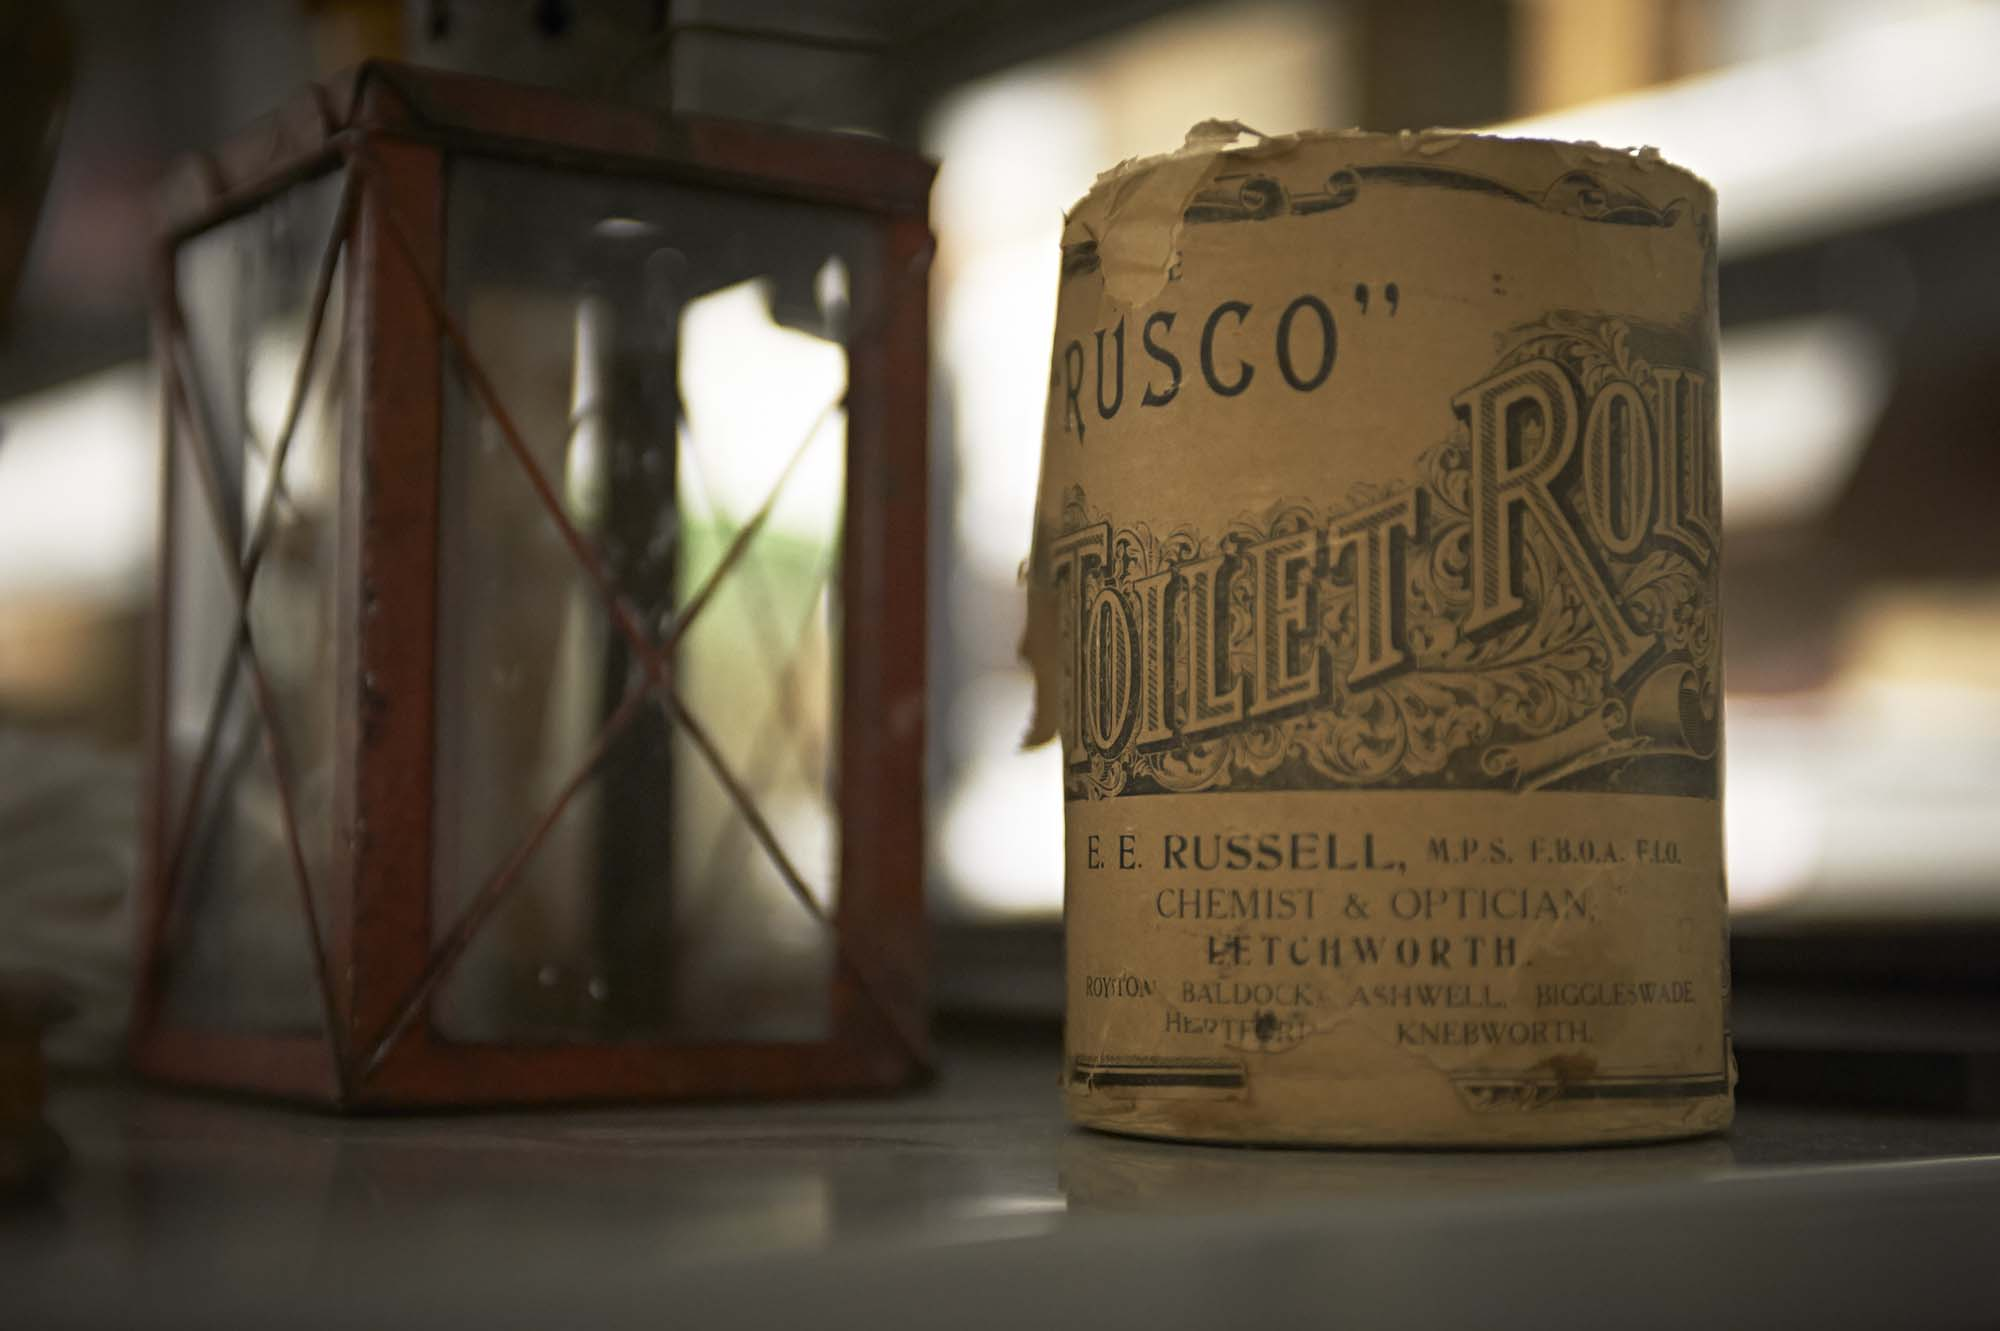 a photo of an old roll of loo roll called Rusco Toilet Roll